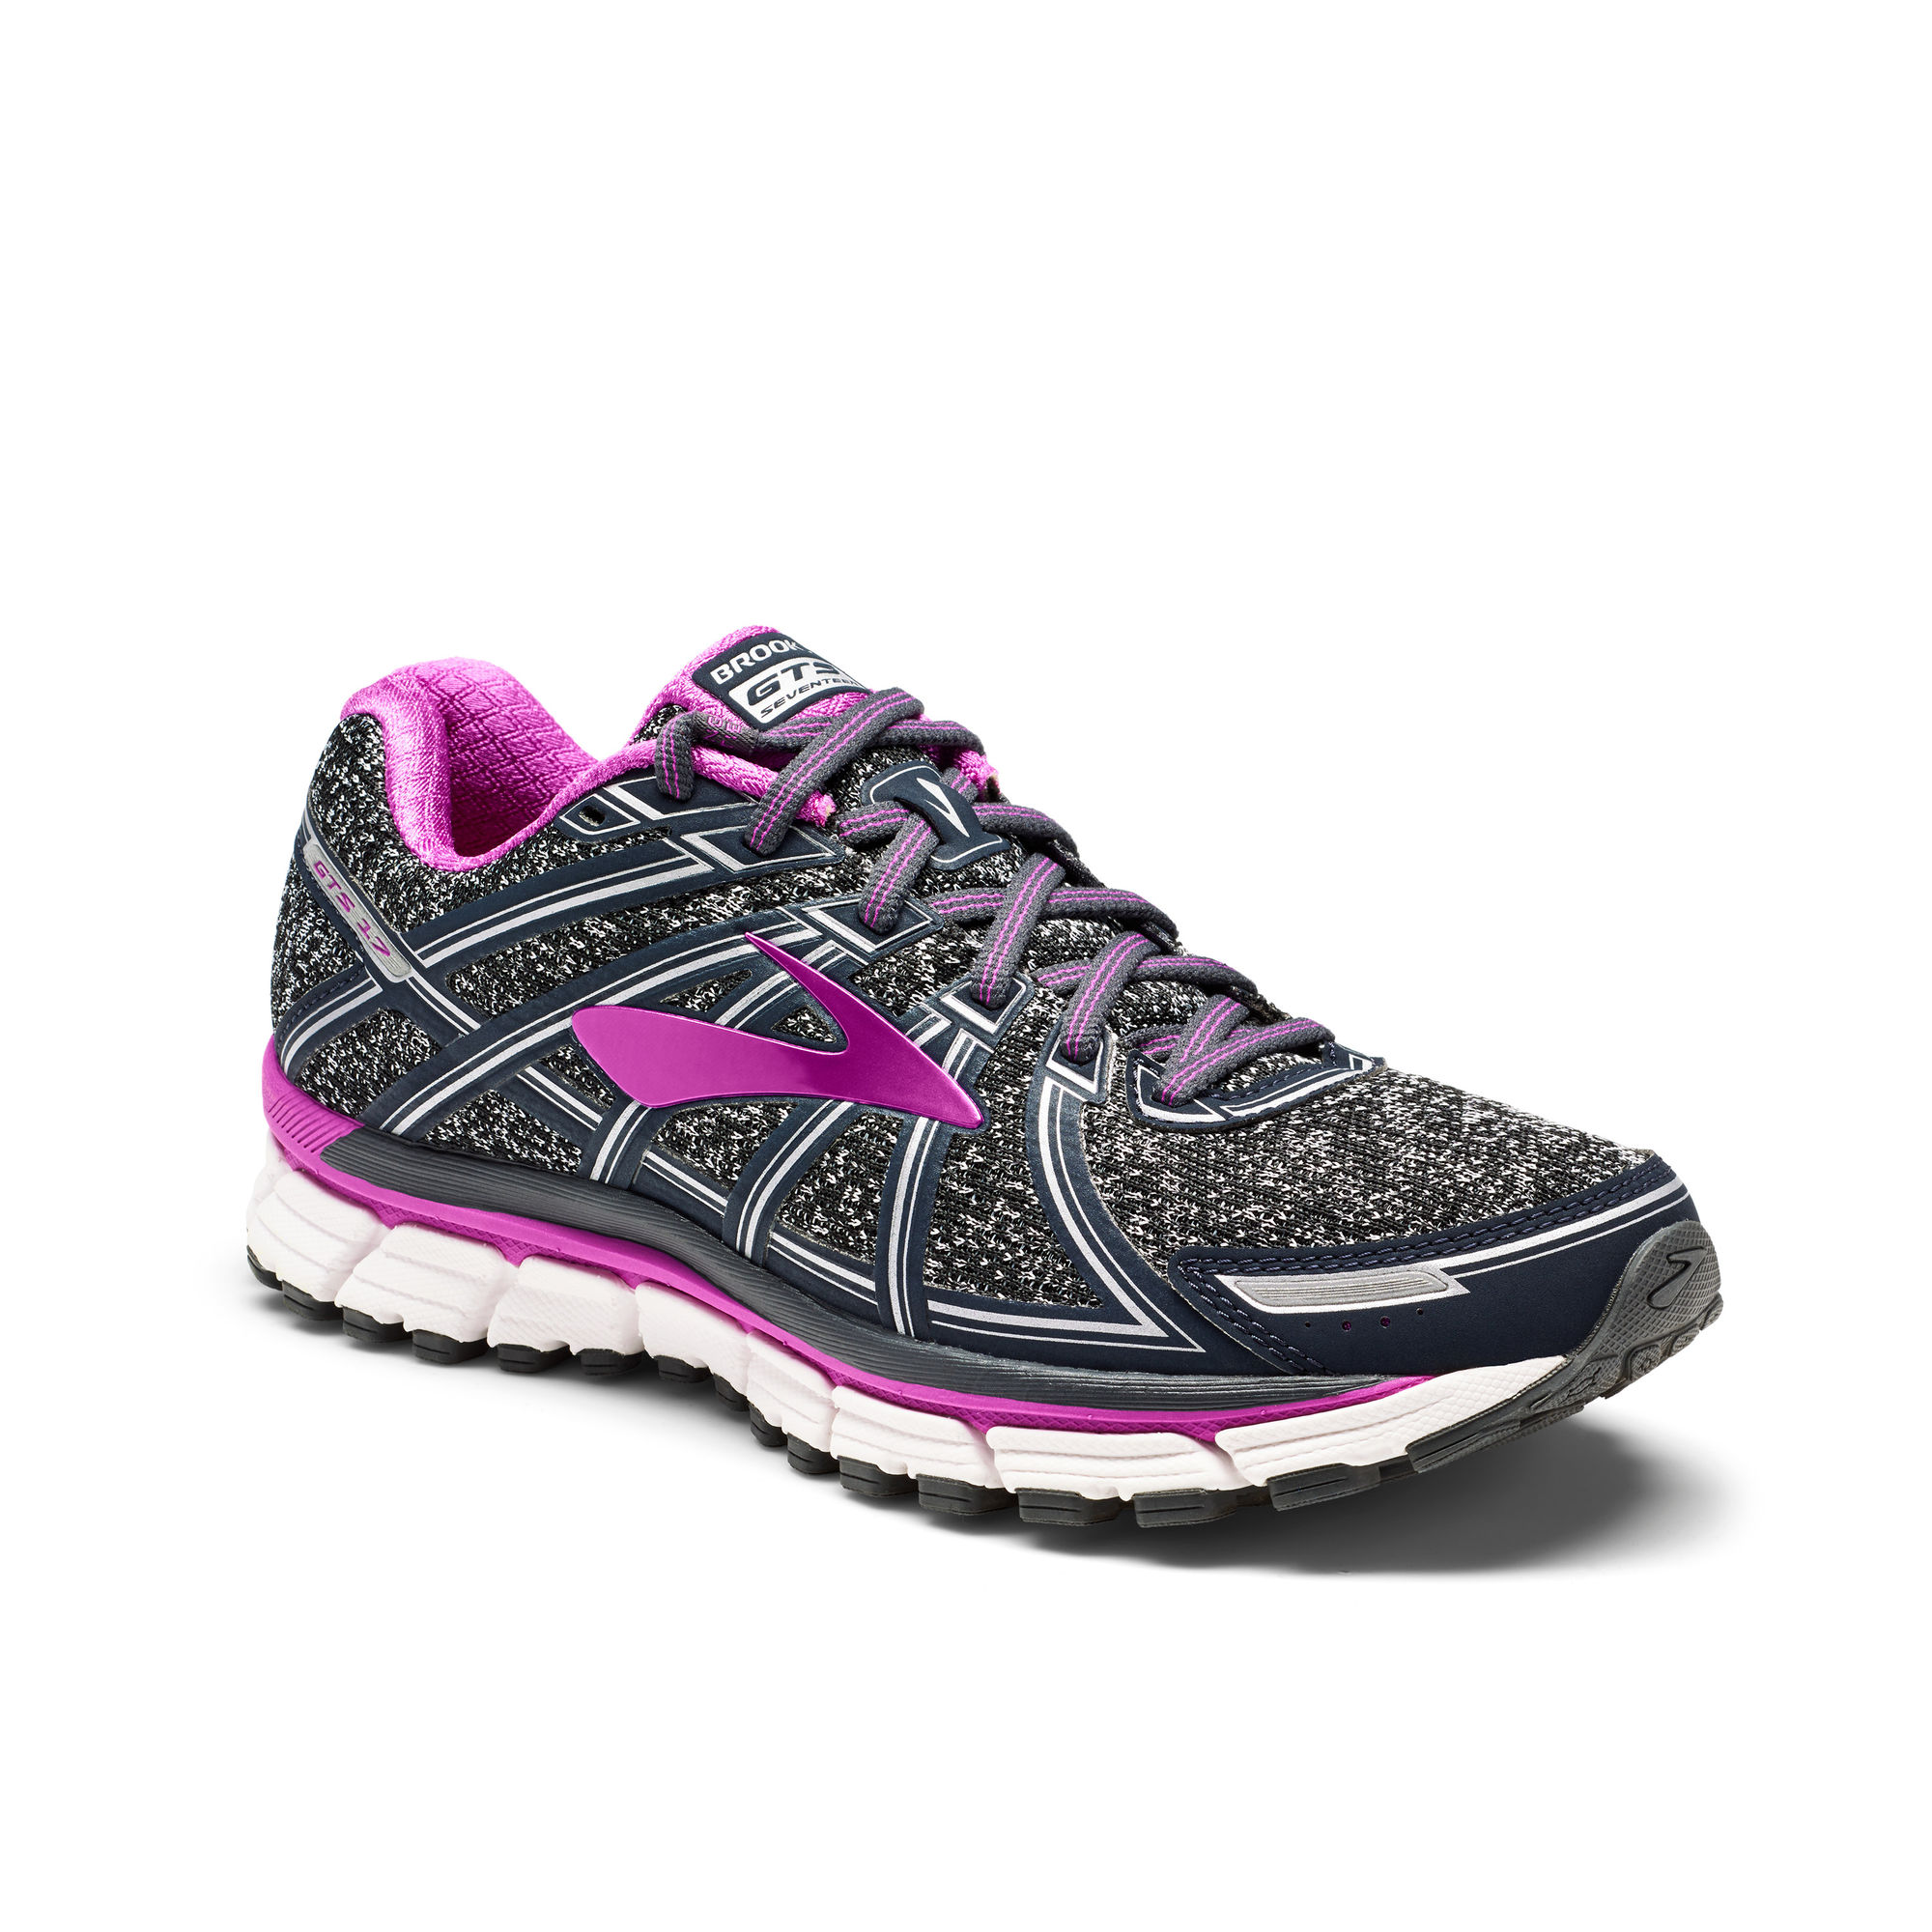 Brooks Lady Adrenaline GTS 17 B in Charcoal Purple